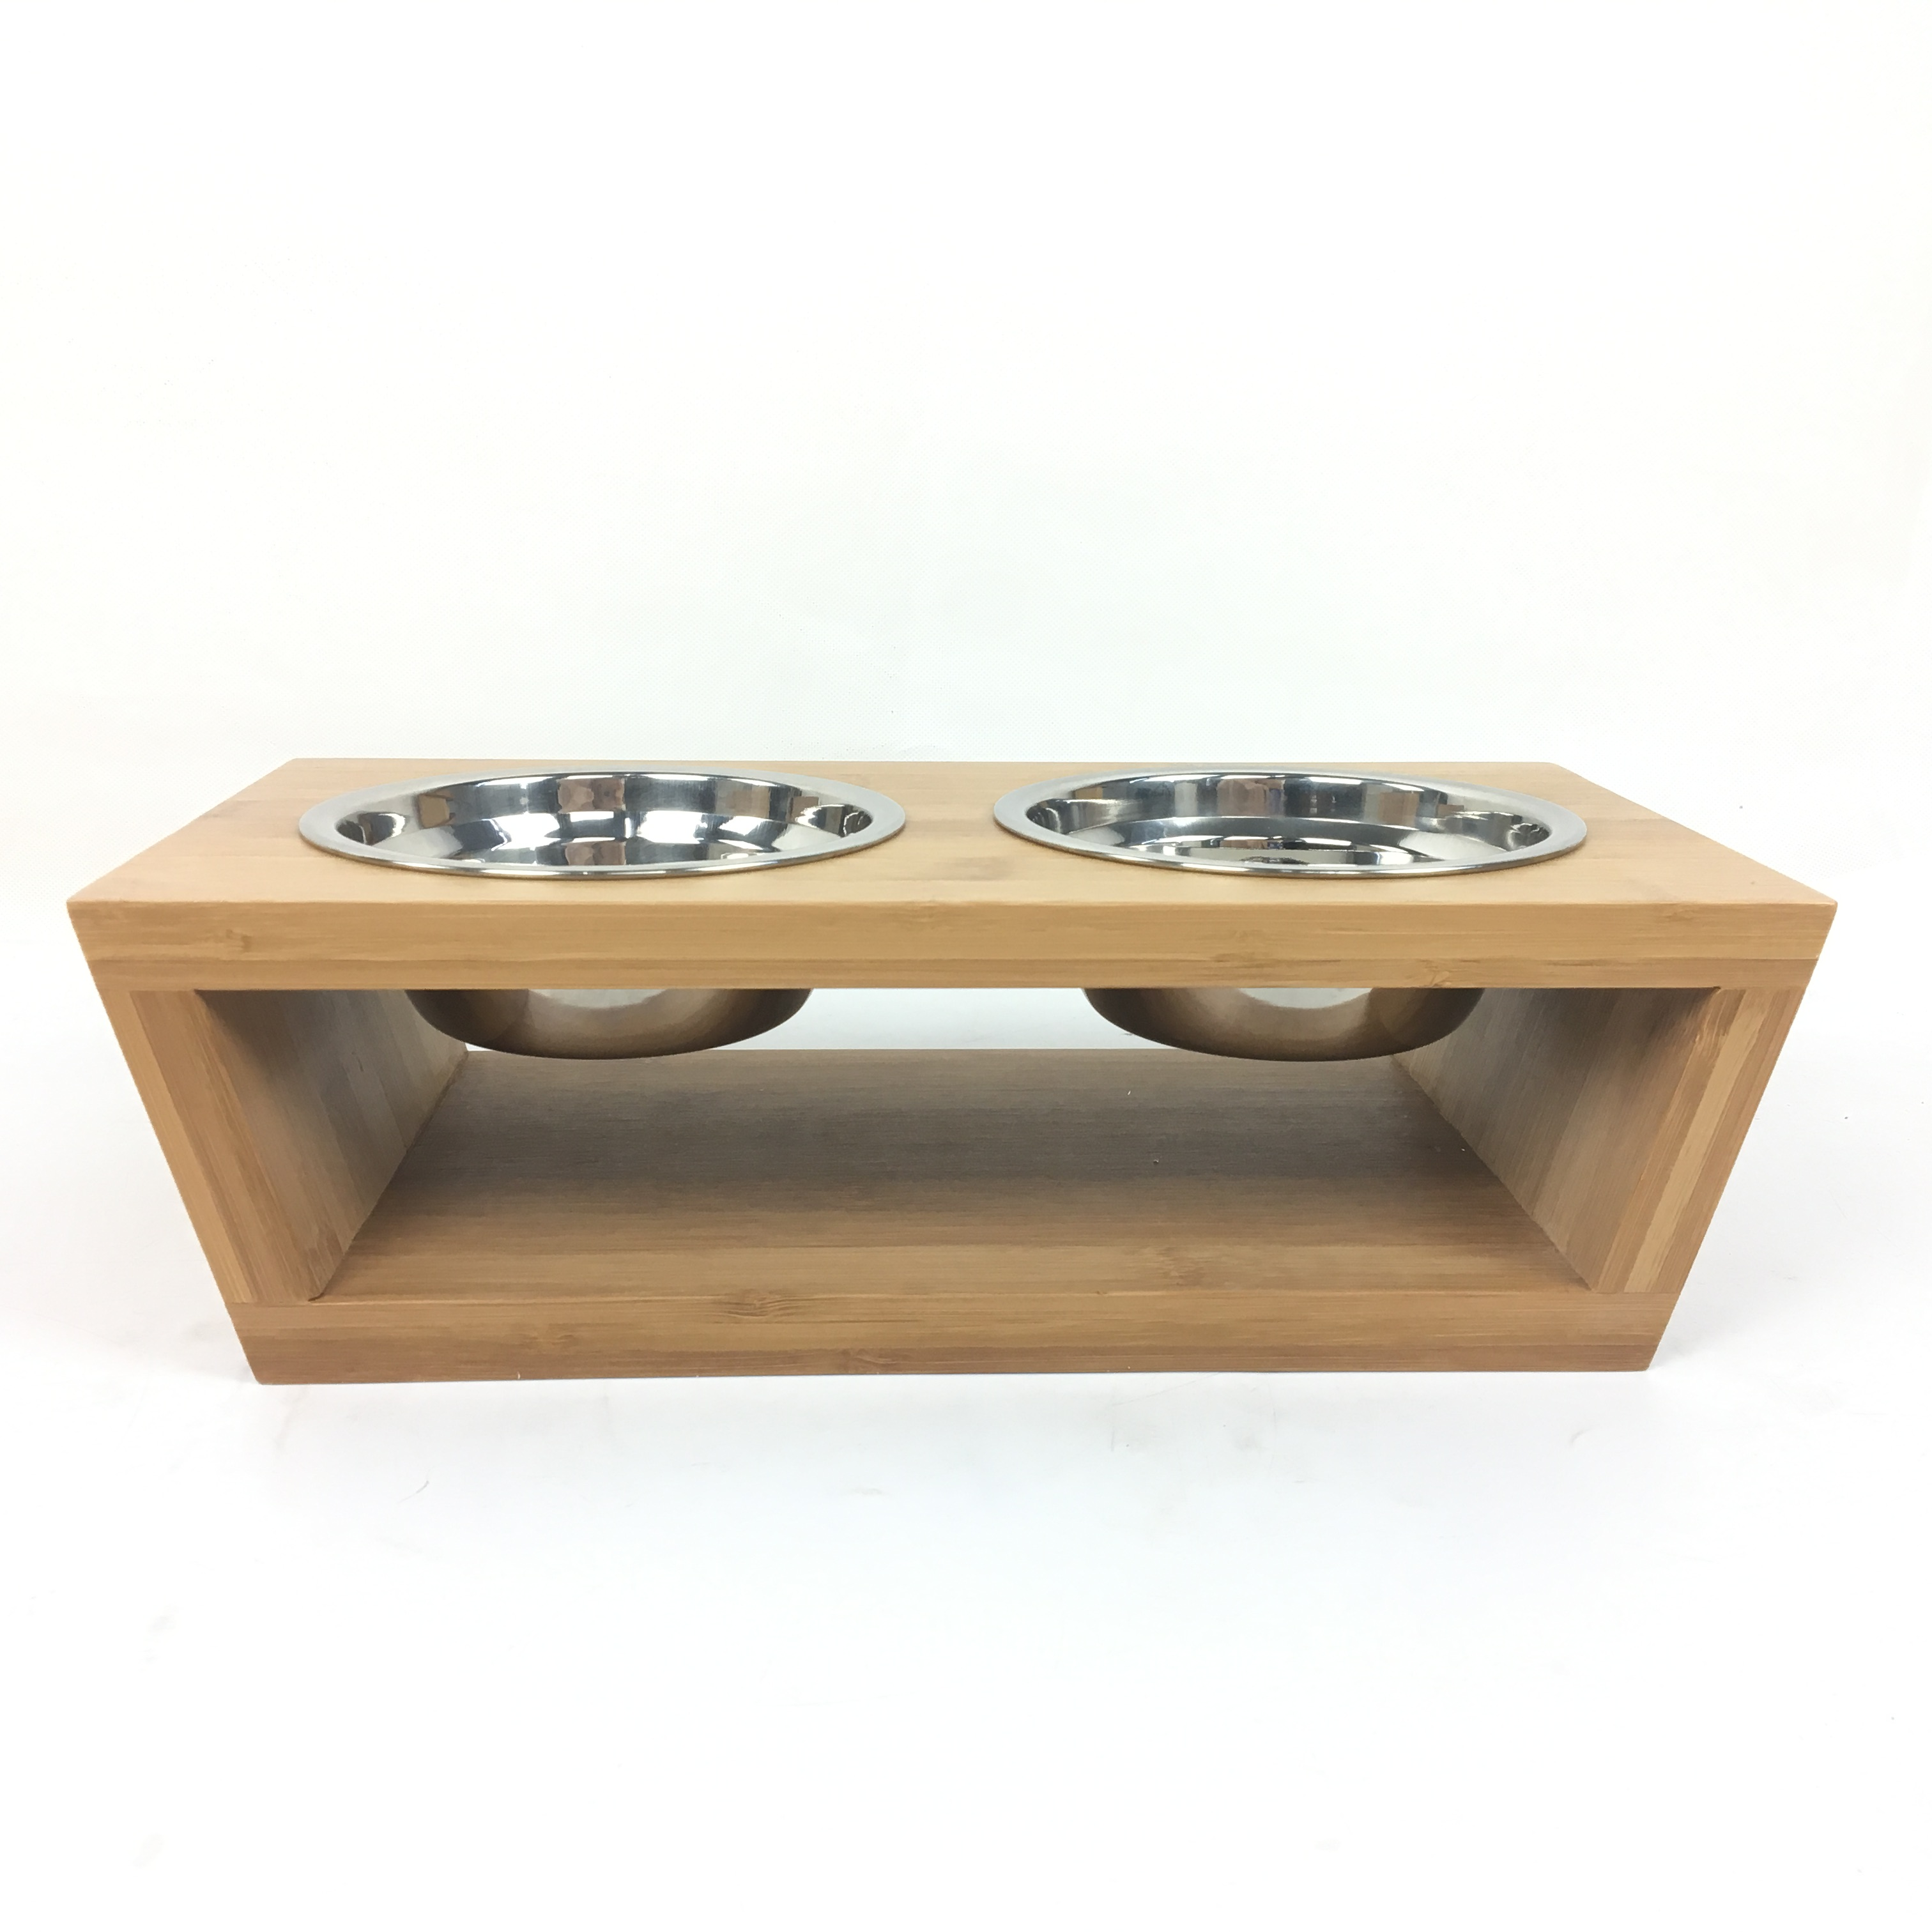 elevated for collars pet collection these cat by apparel leashes food bowls beds life nelson dogs cats bowl dog love art deco unleashed or feeder gear pin